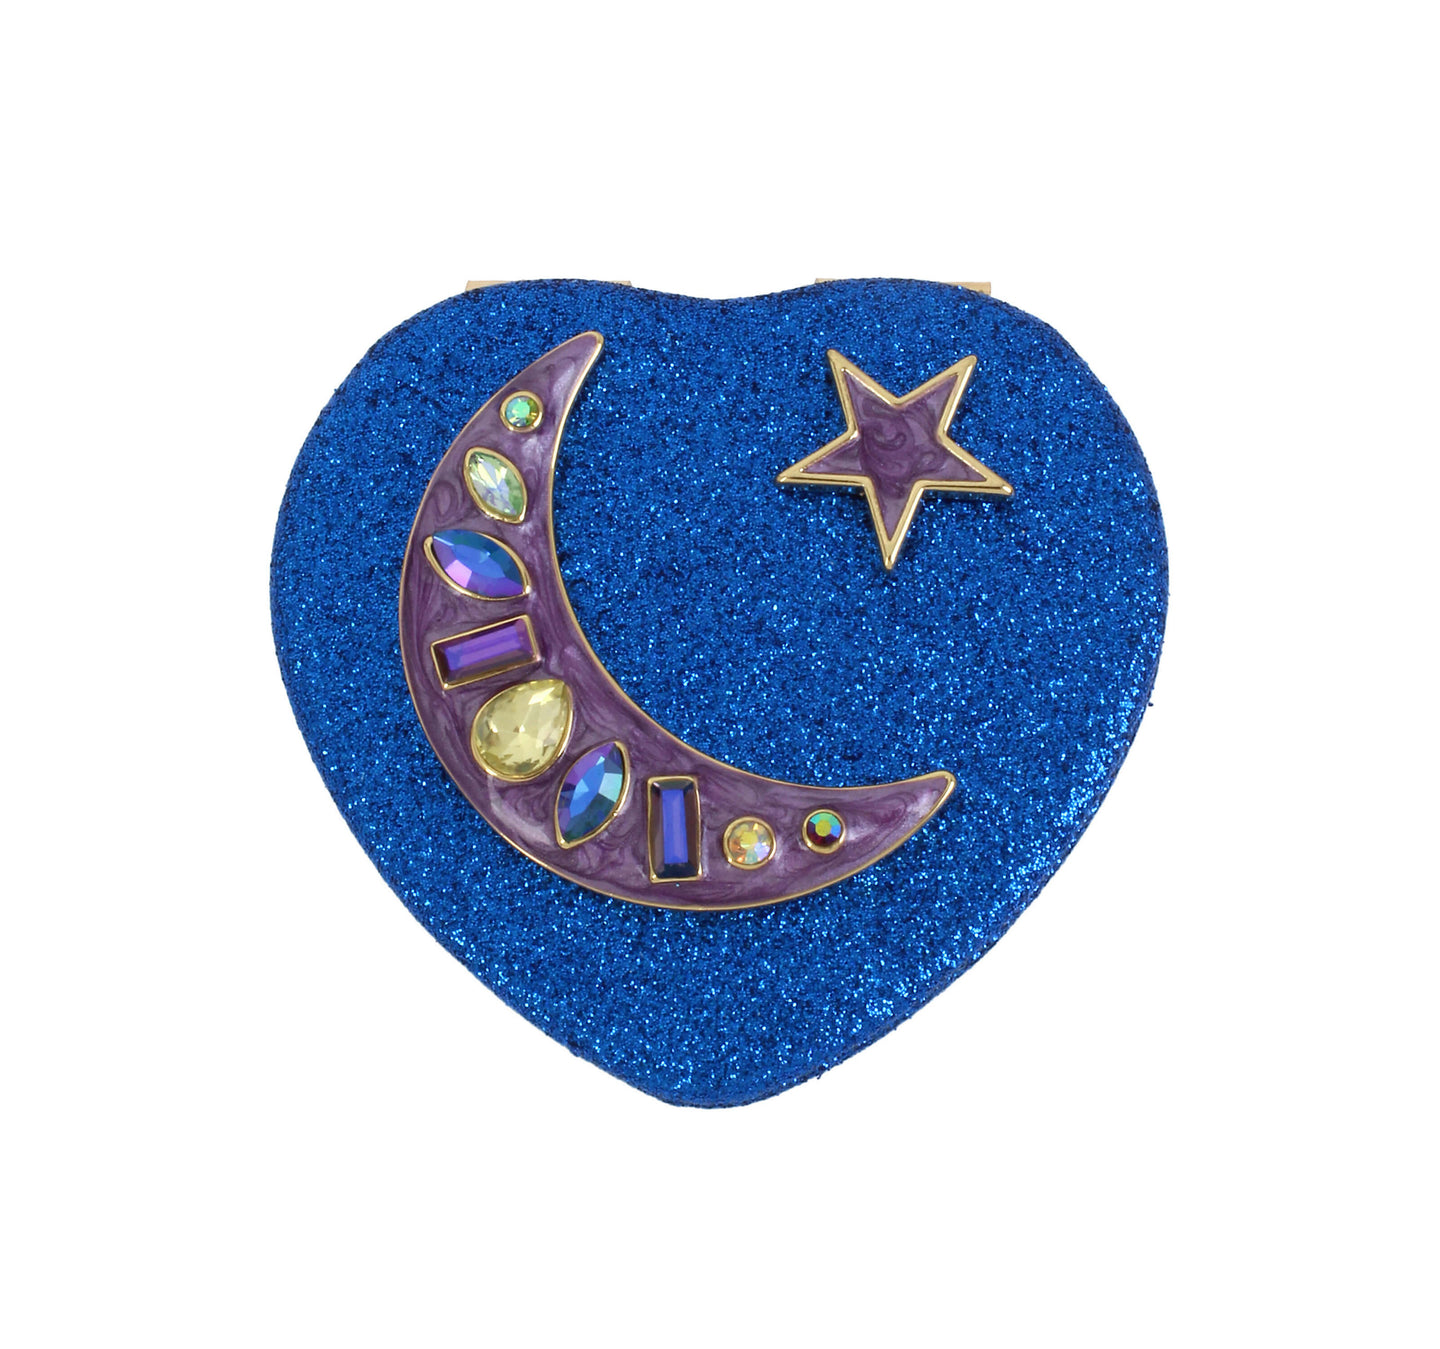 HOLIDAY 2018 BLUE MOON COMPACT BLUE - ACCESSORIES - Betsey Johnson